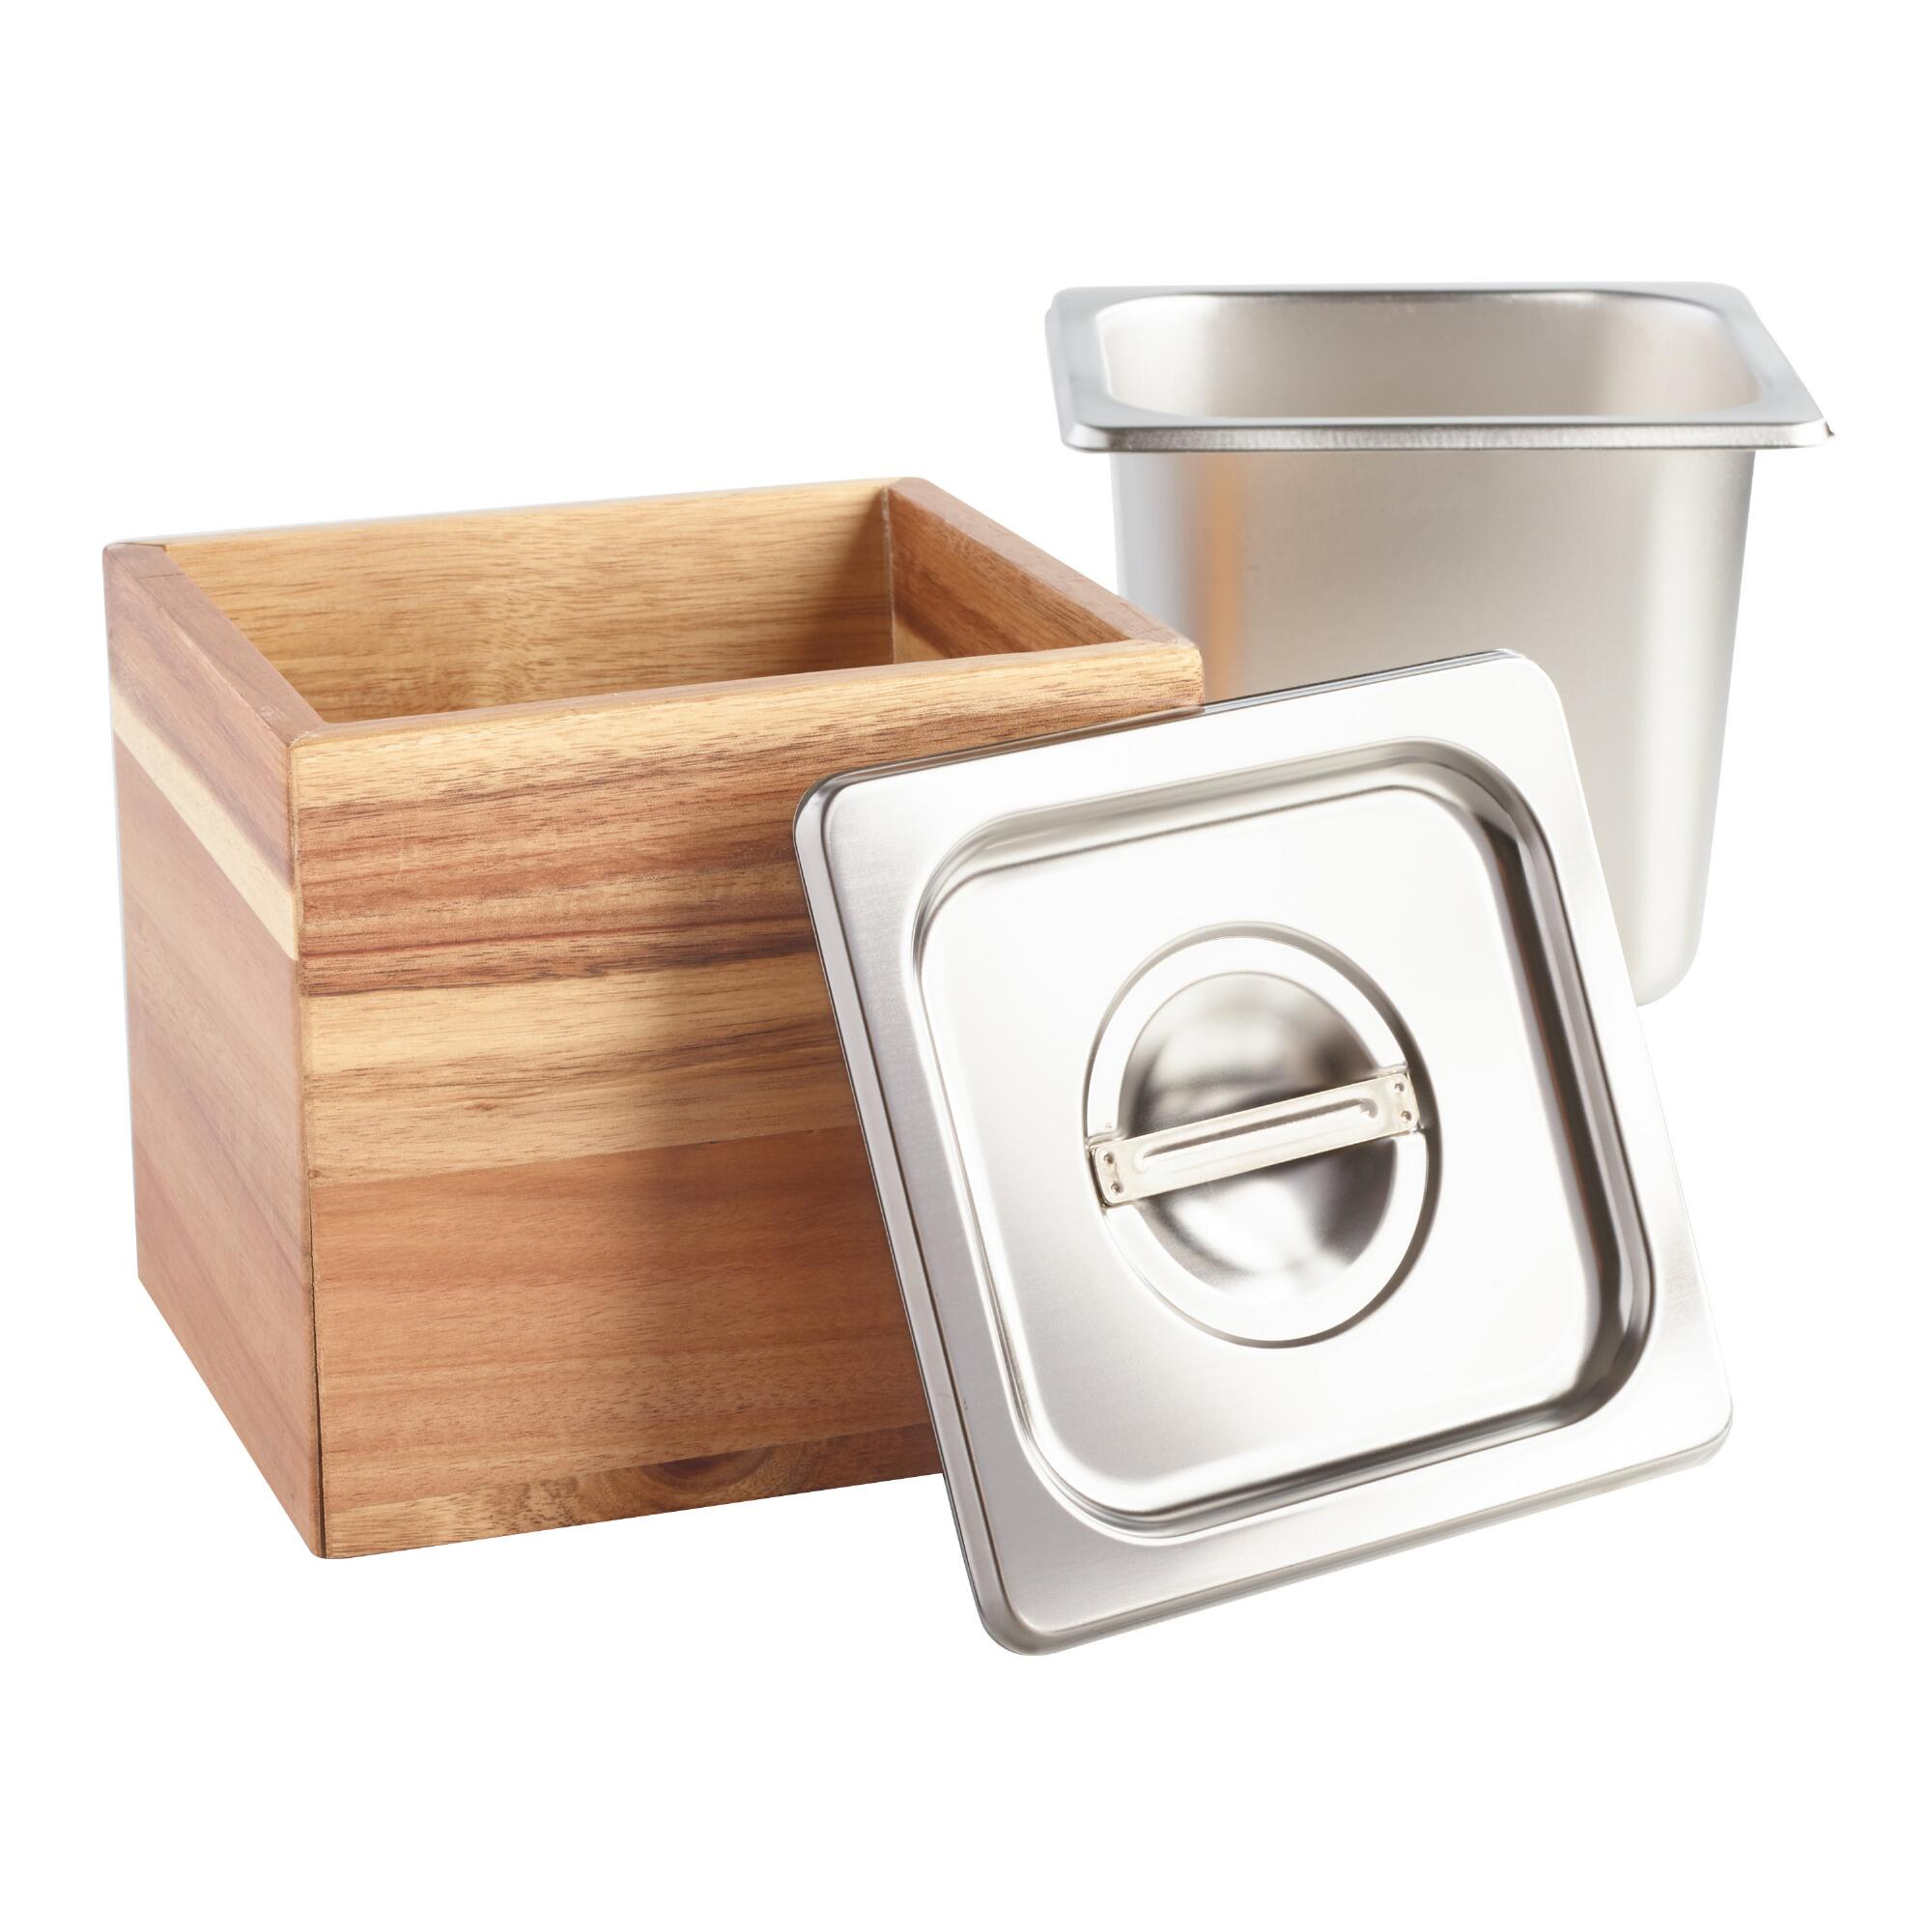 Wood and Stainless Steel Kitchen Compost Bin by World Market